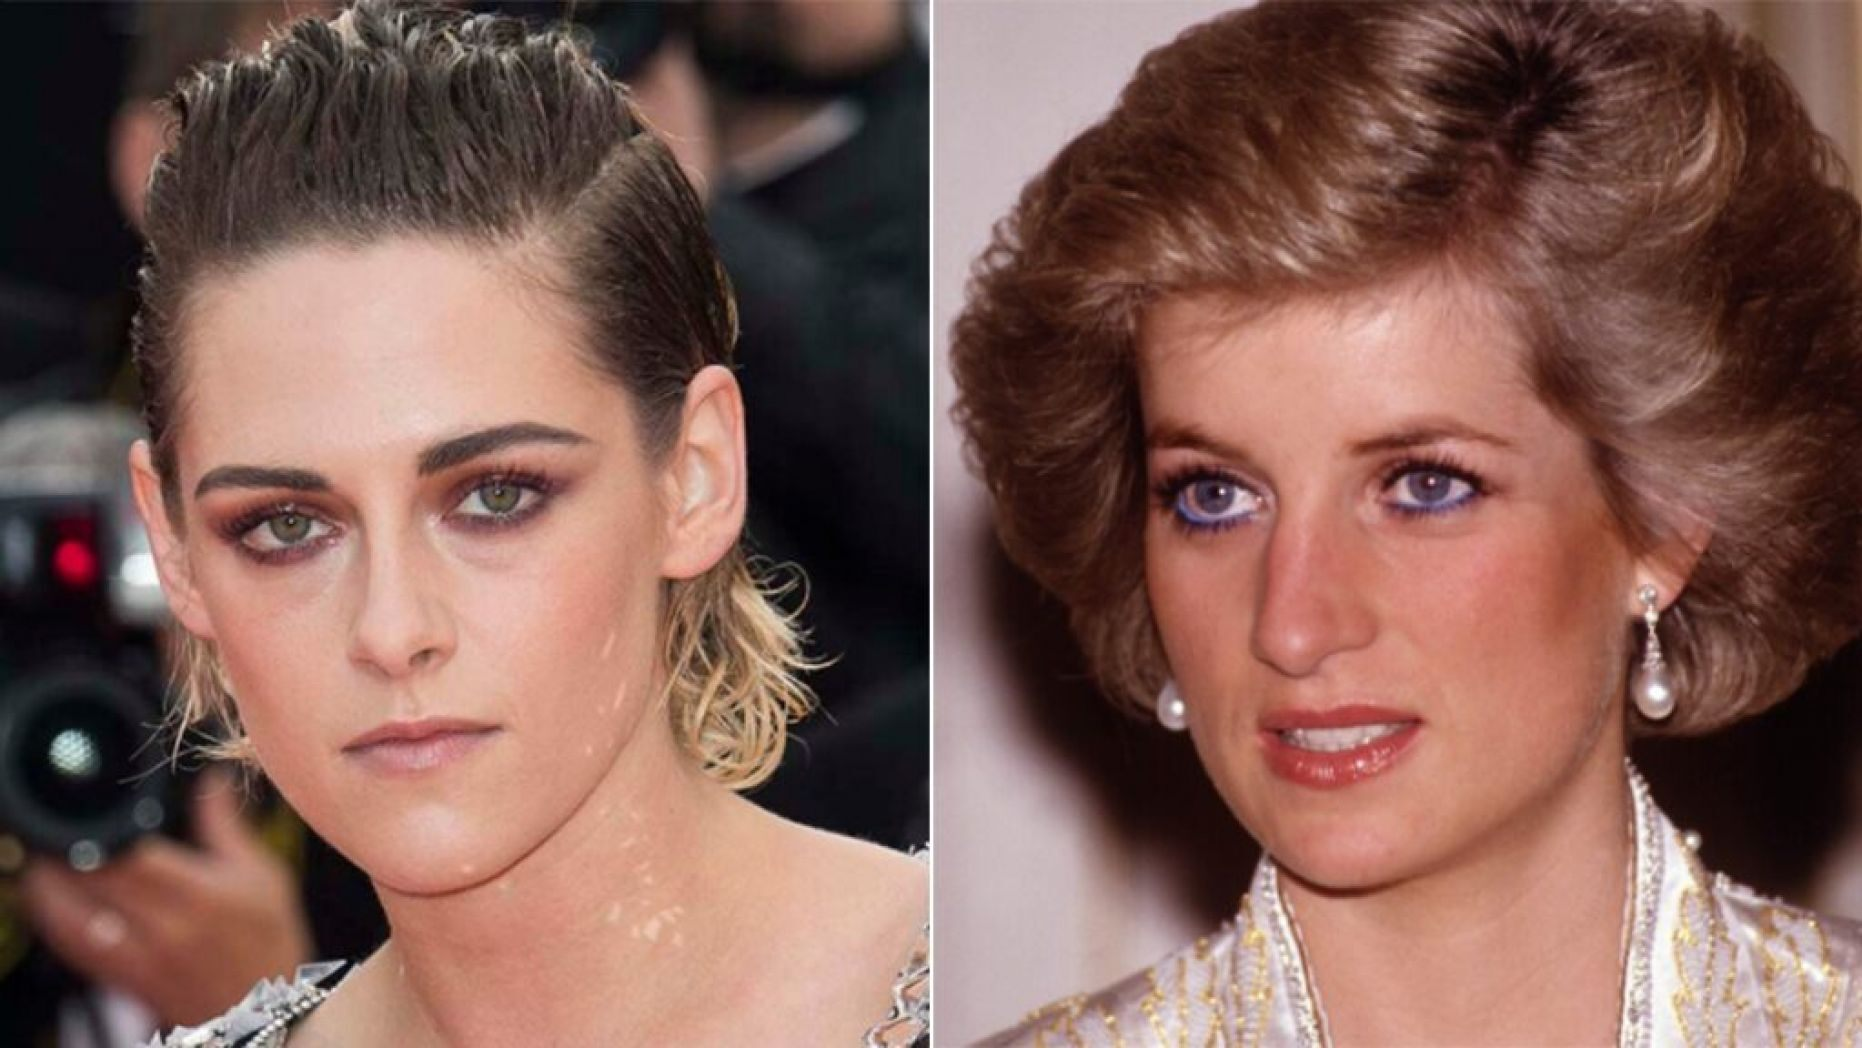 Kristen-Stewart-AP-Princess-Diana-Getty